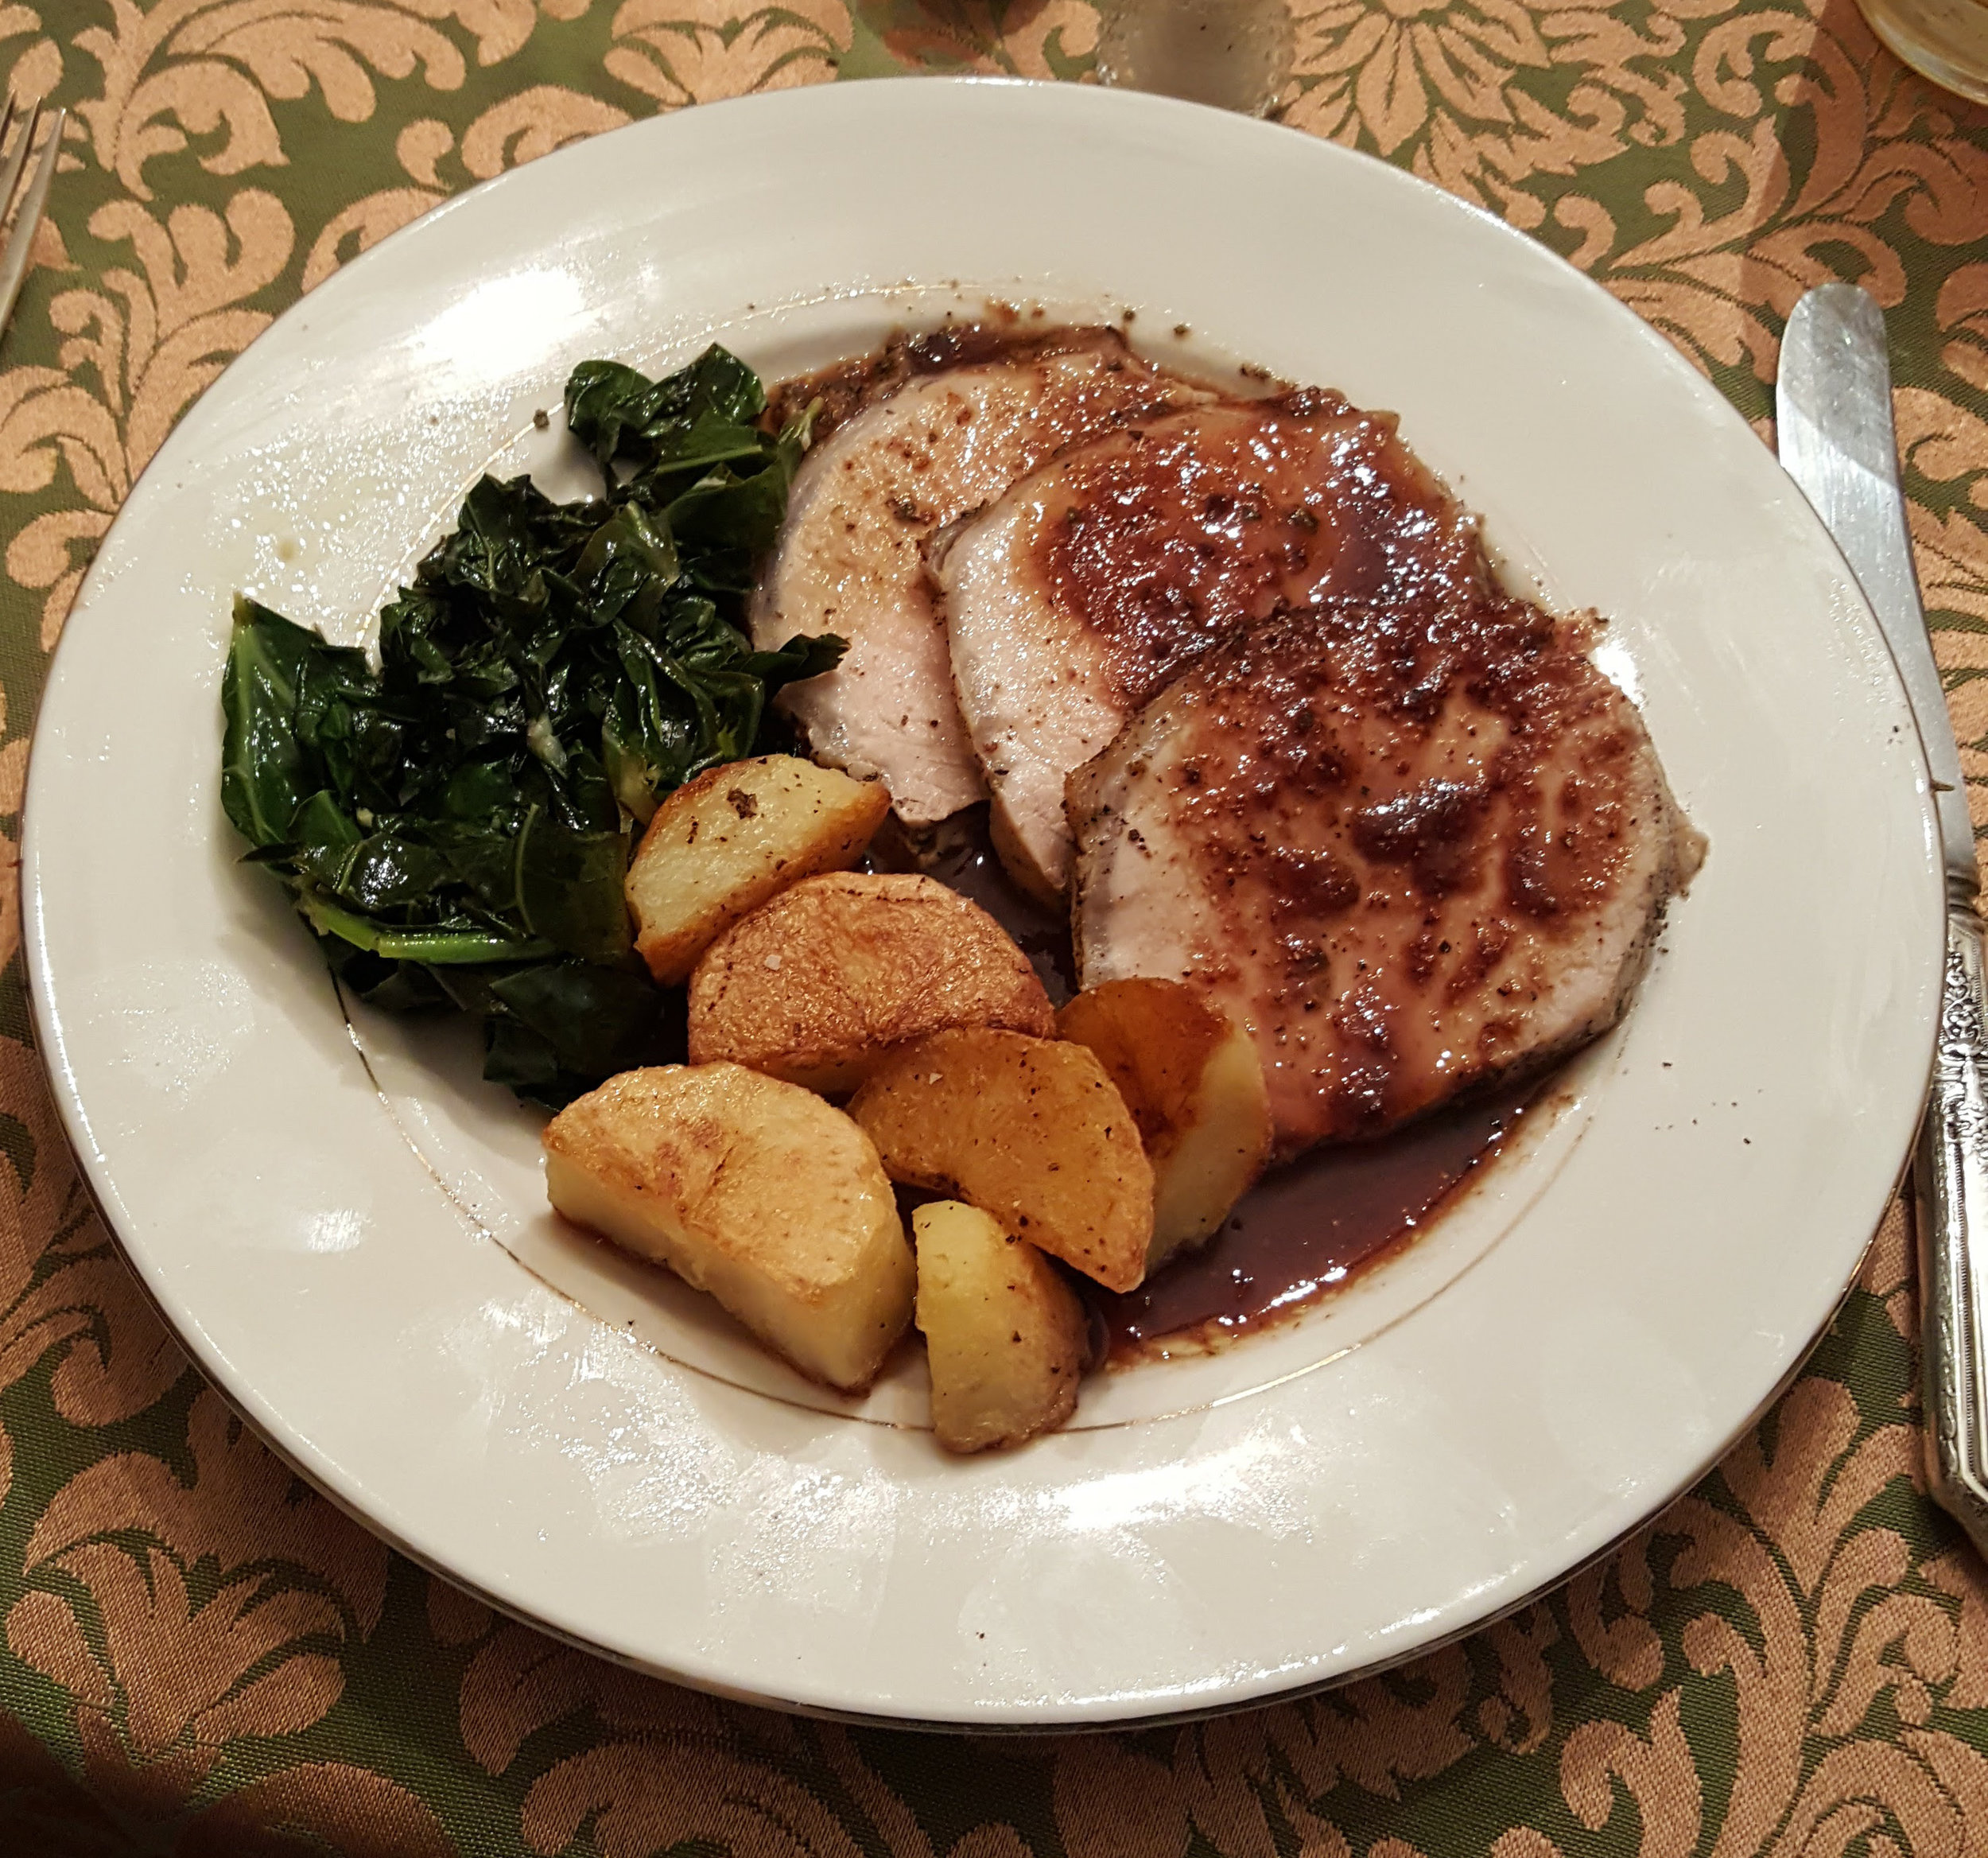 Pork loin with port and fig reduction, roasted potatoes, suateed kale